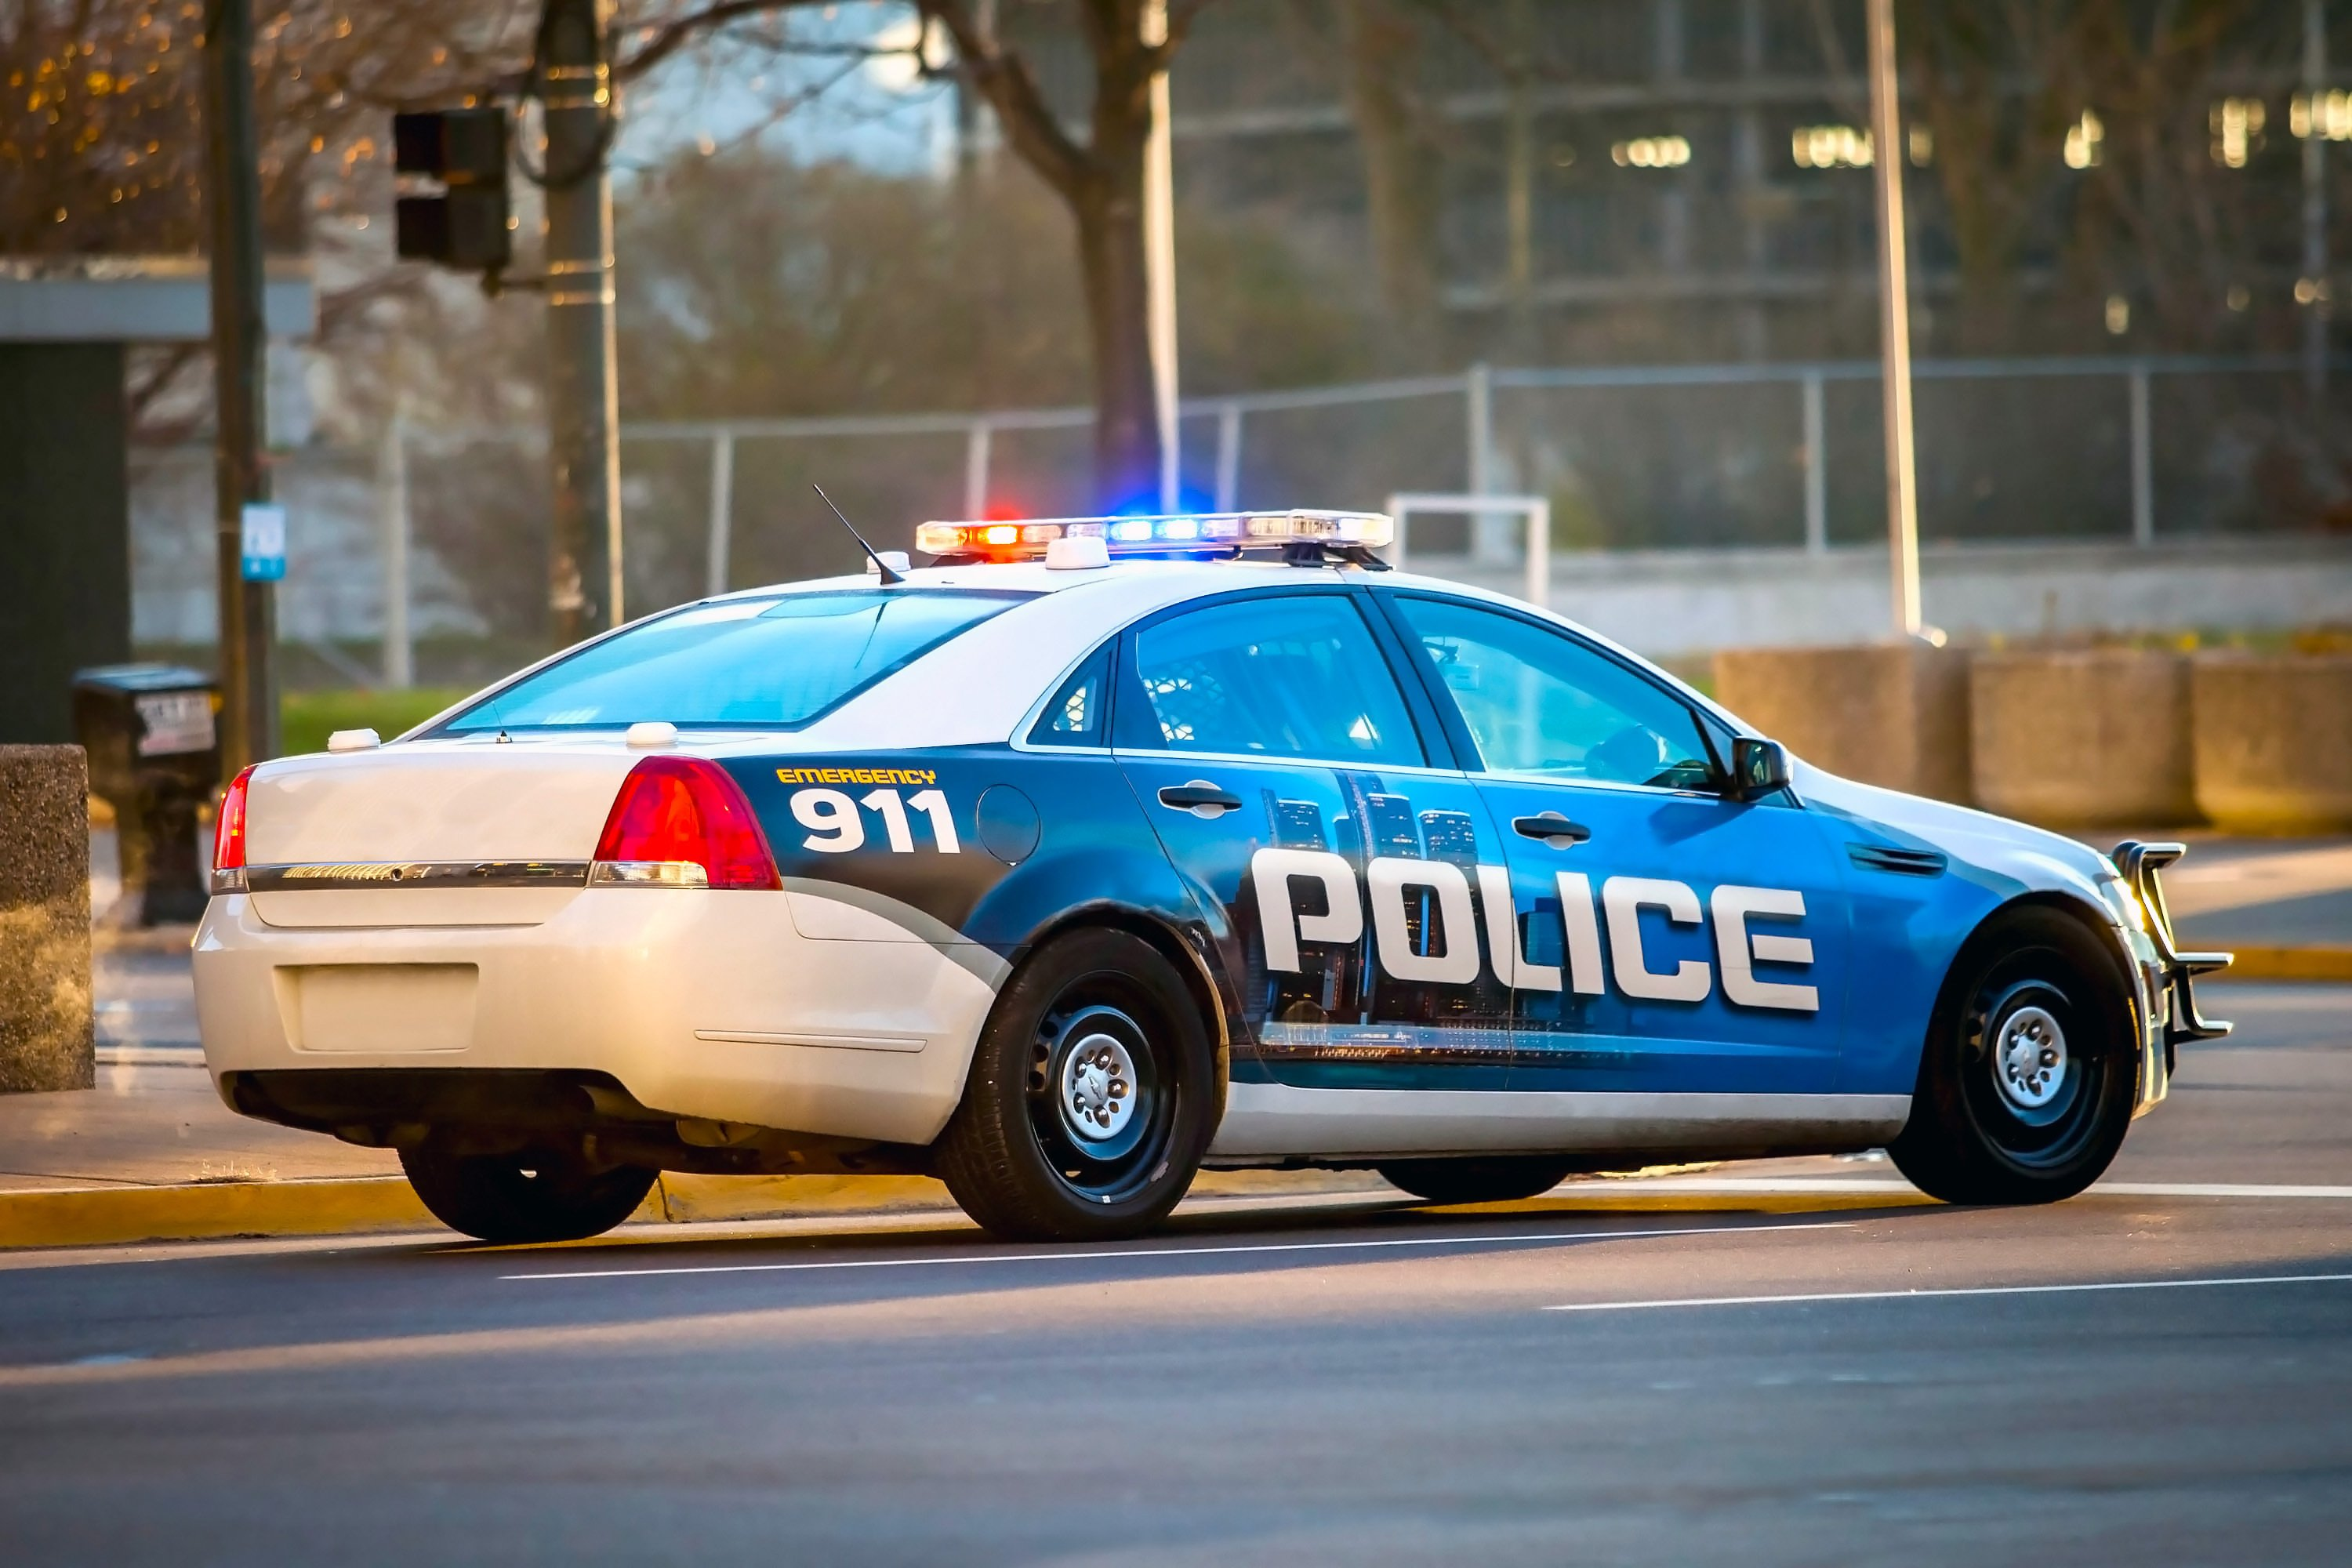 A blue police car speeds into action. | Photo: Shutterstock